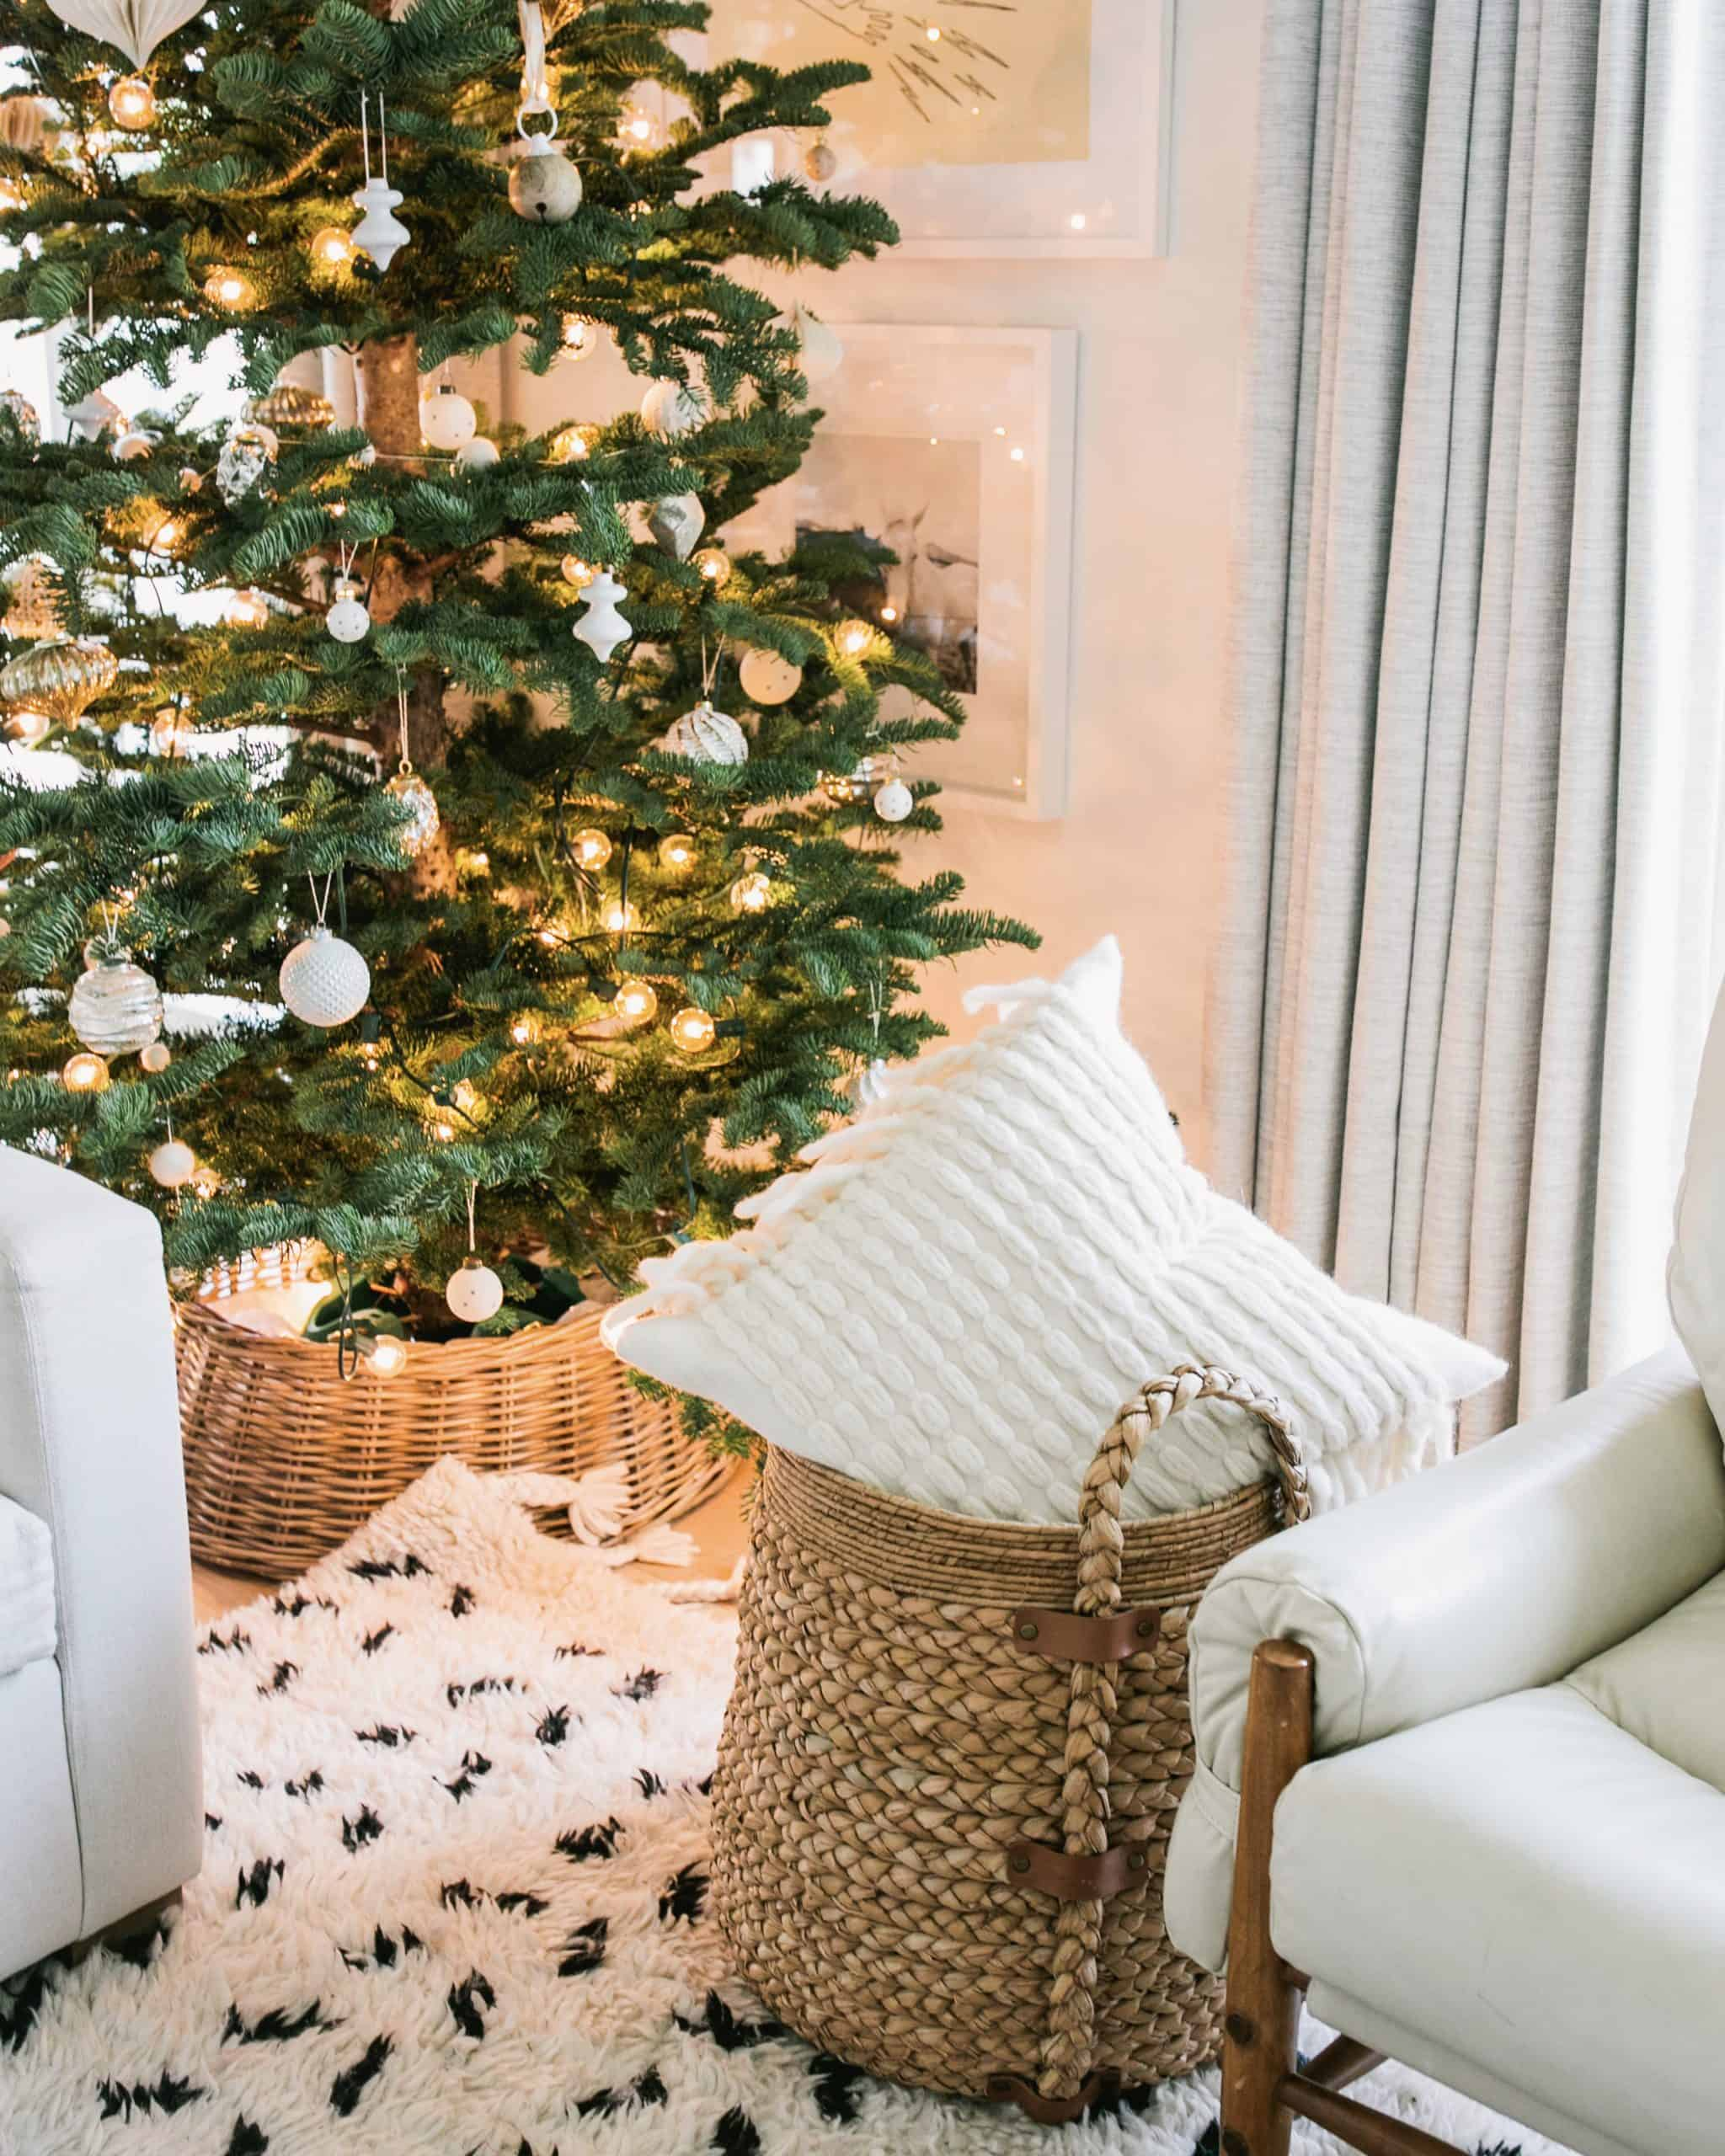 Holiday Decor Image